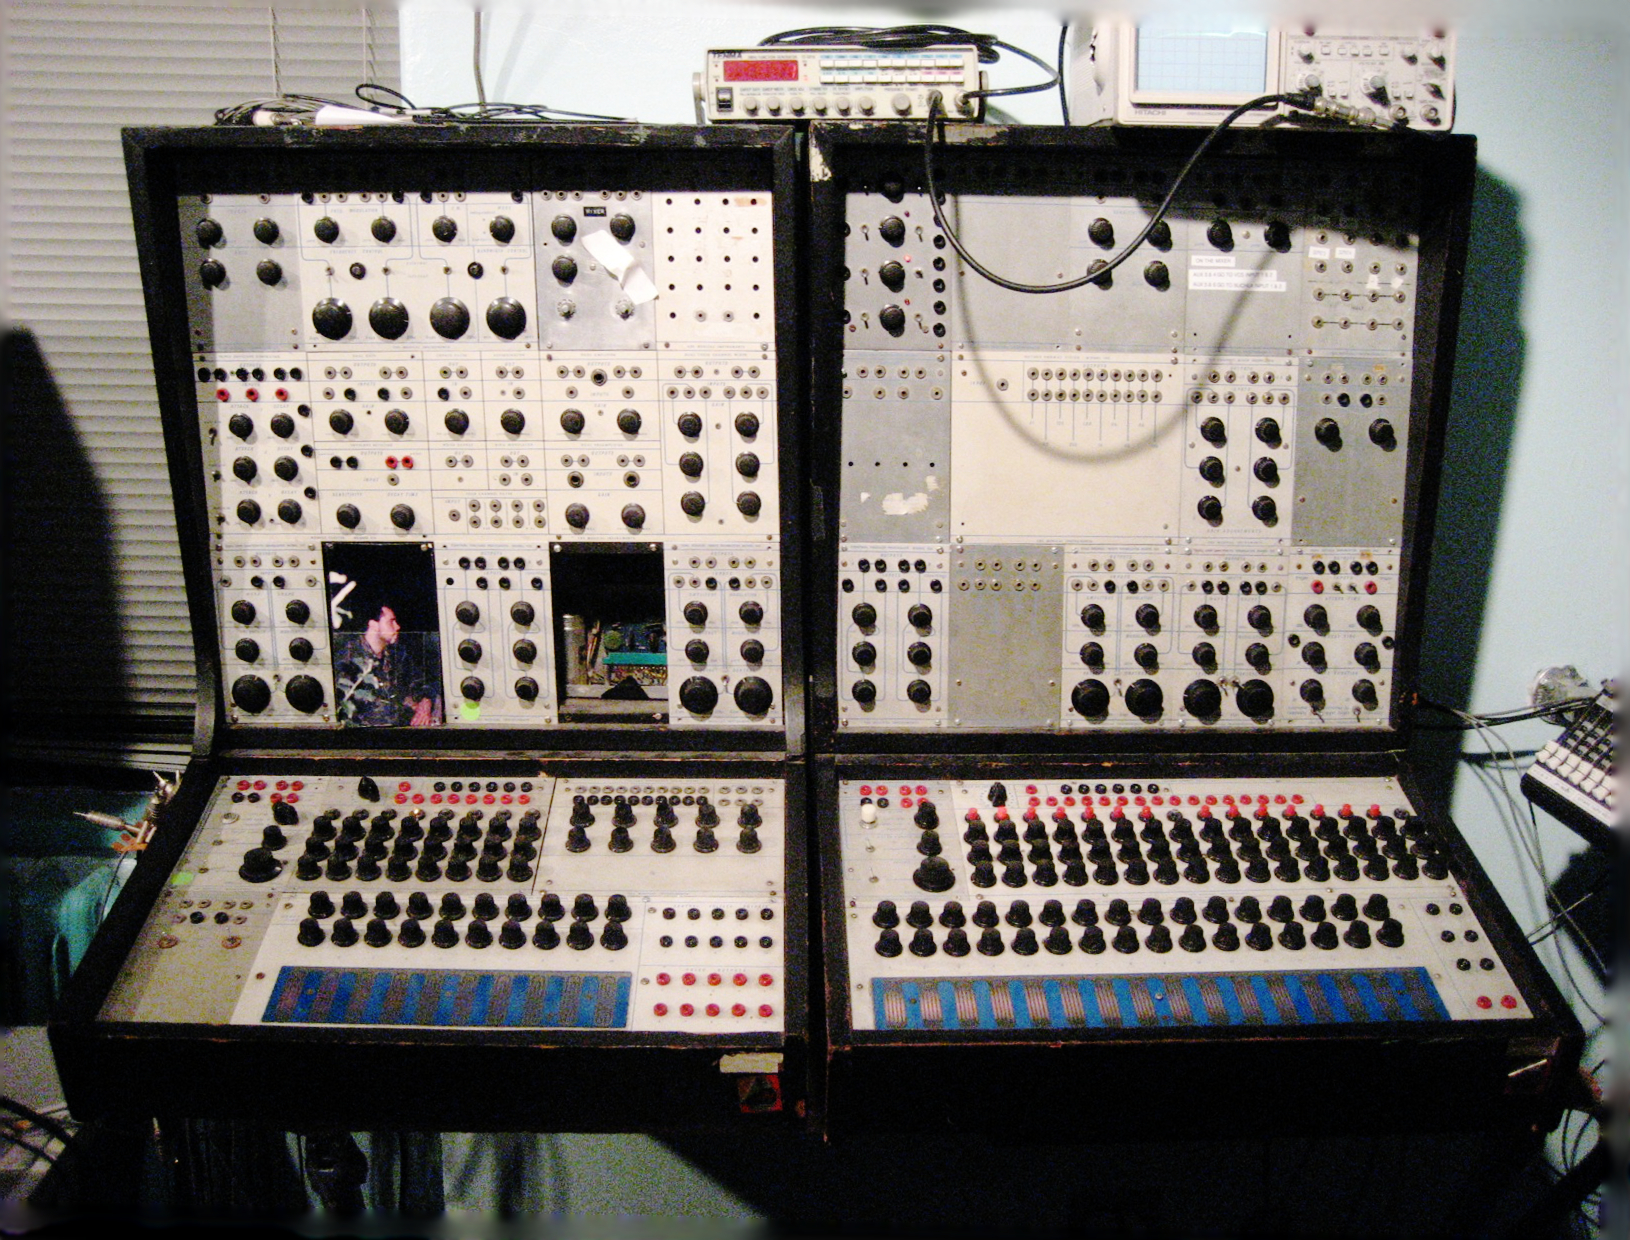 Electronic Instruments Books : Buchla electronic musical instruments wiki everipedia